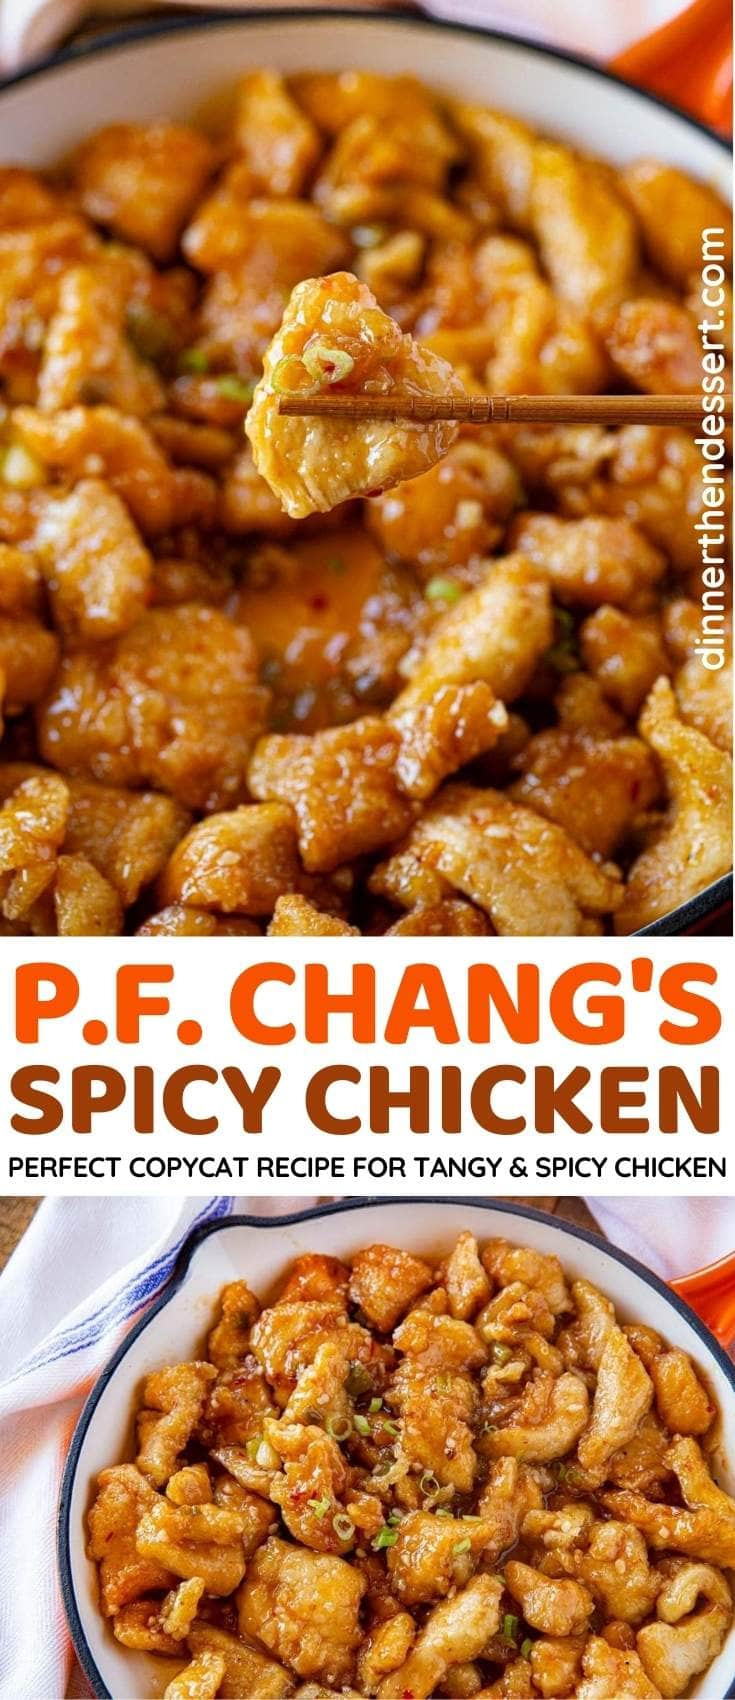 P.F. Chang's Spicy Chicken collage